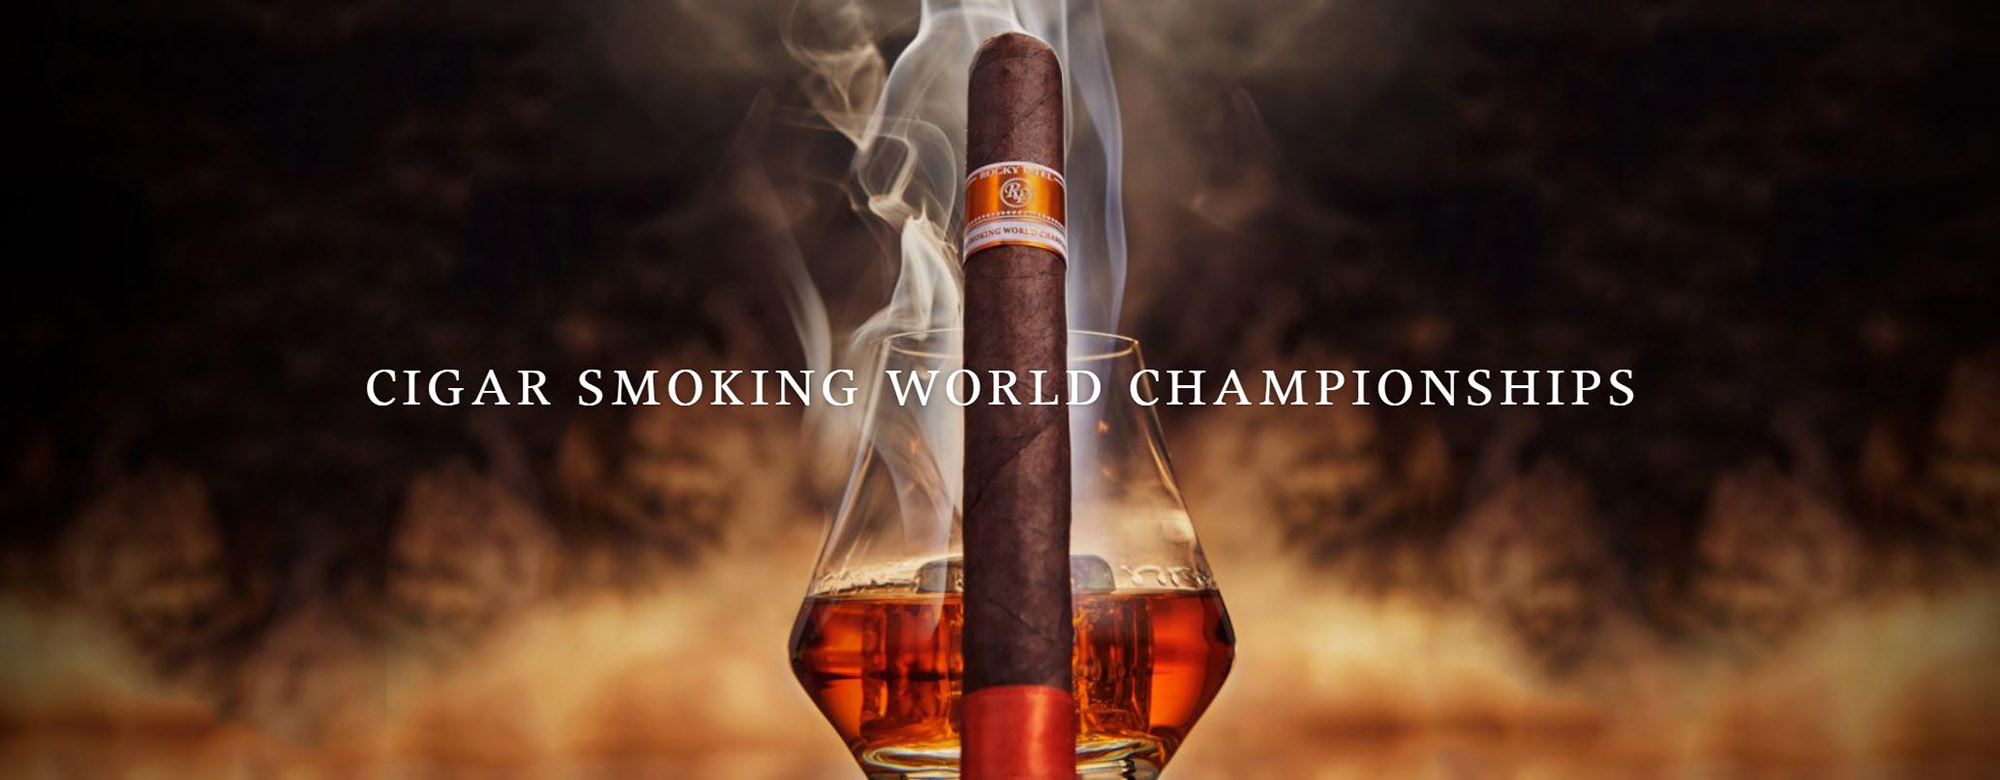 Rocky Patel Cigar Smoking World Championship